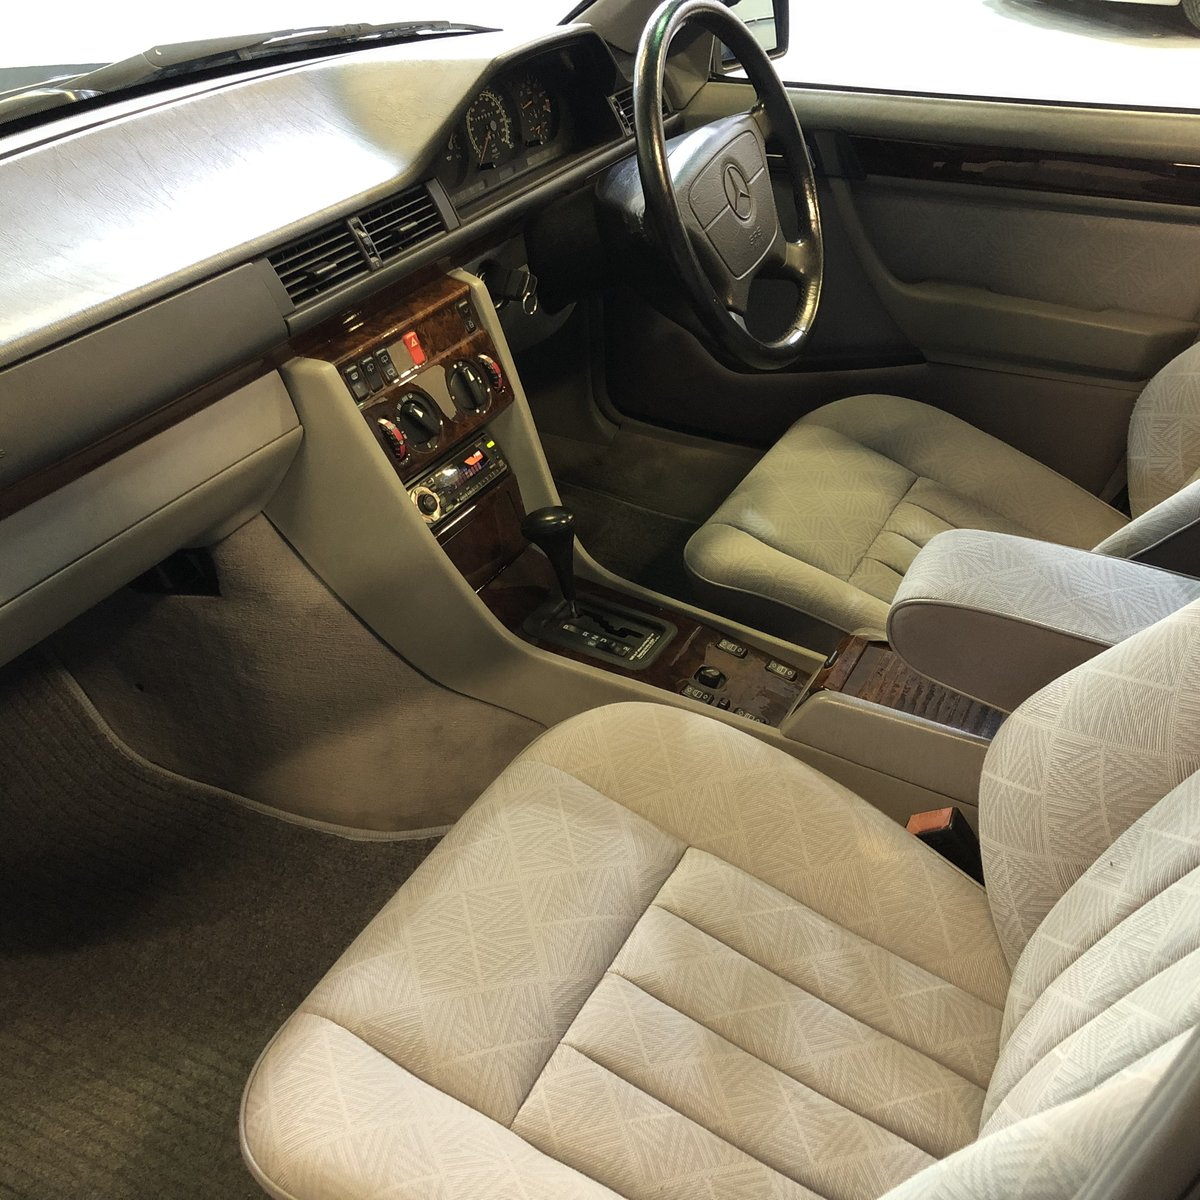 1996 Mercedes E280 Estate For Sale (picture 7 of 12)